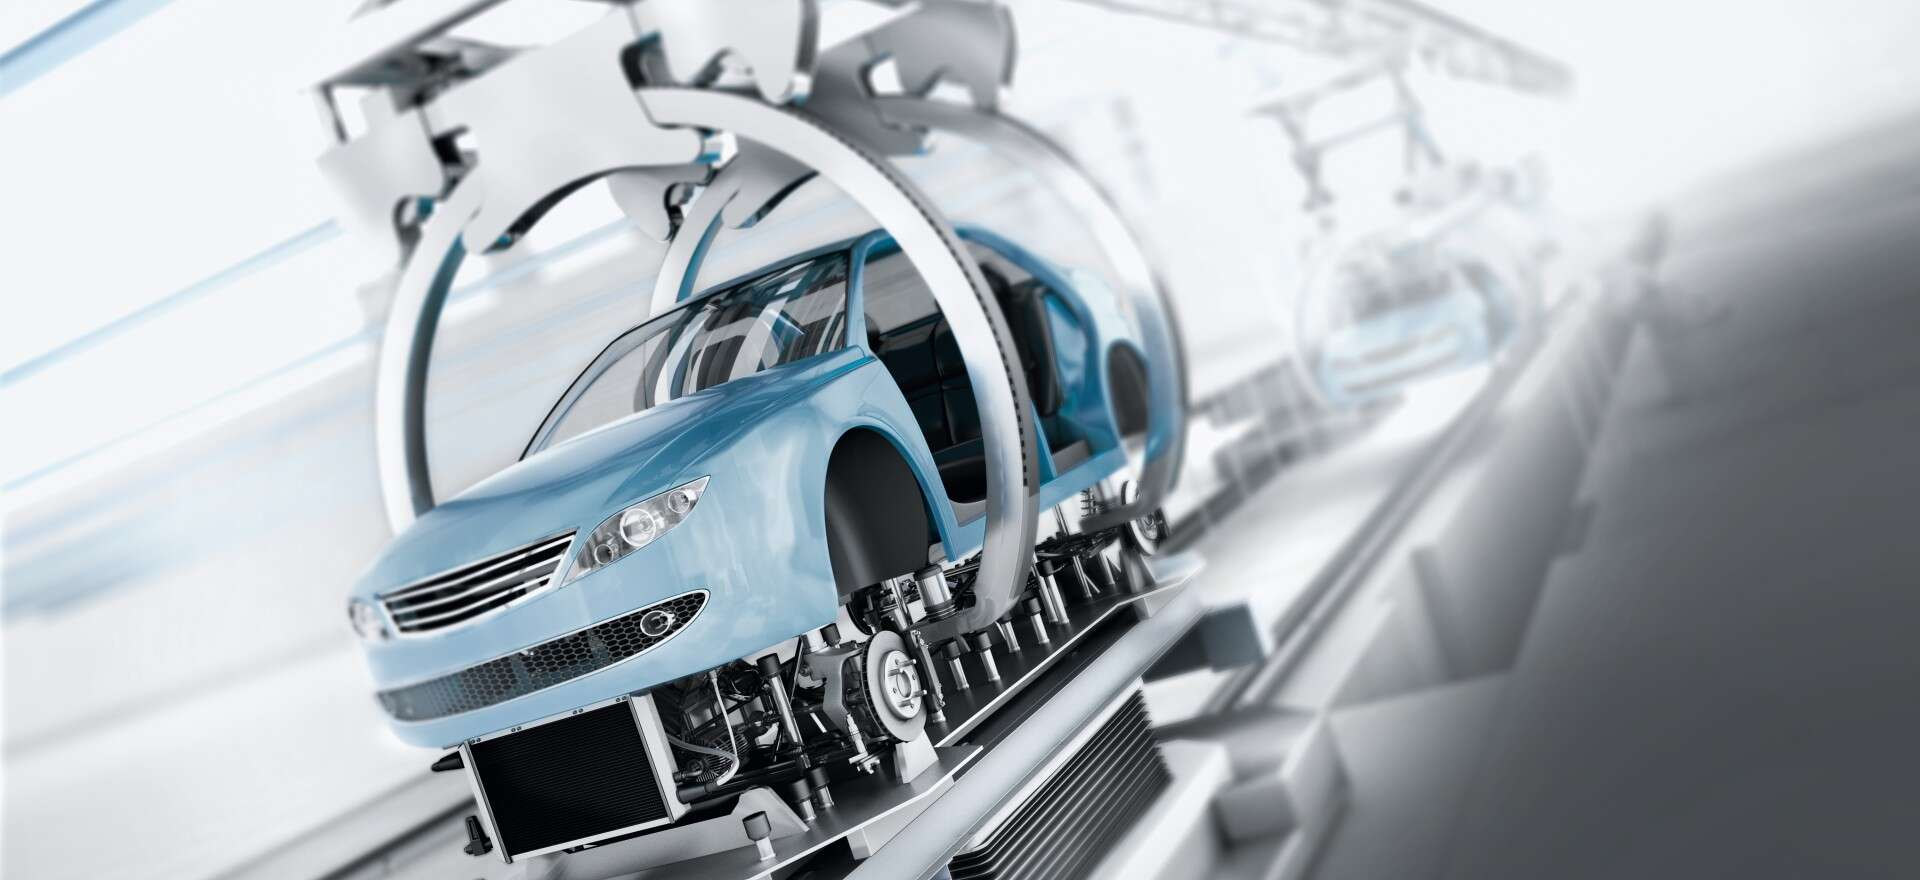 Assembly line in automotive production